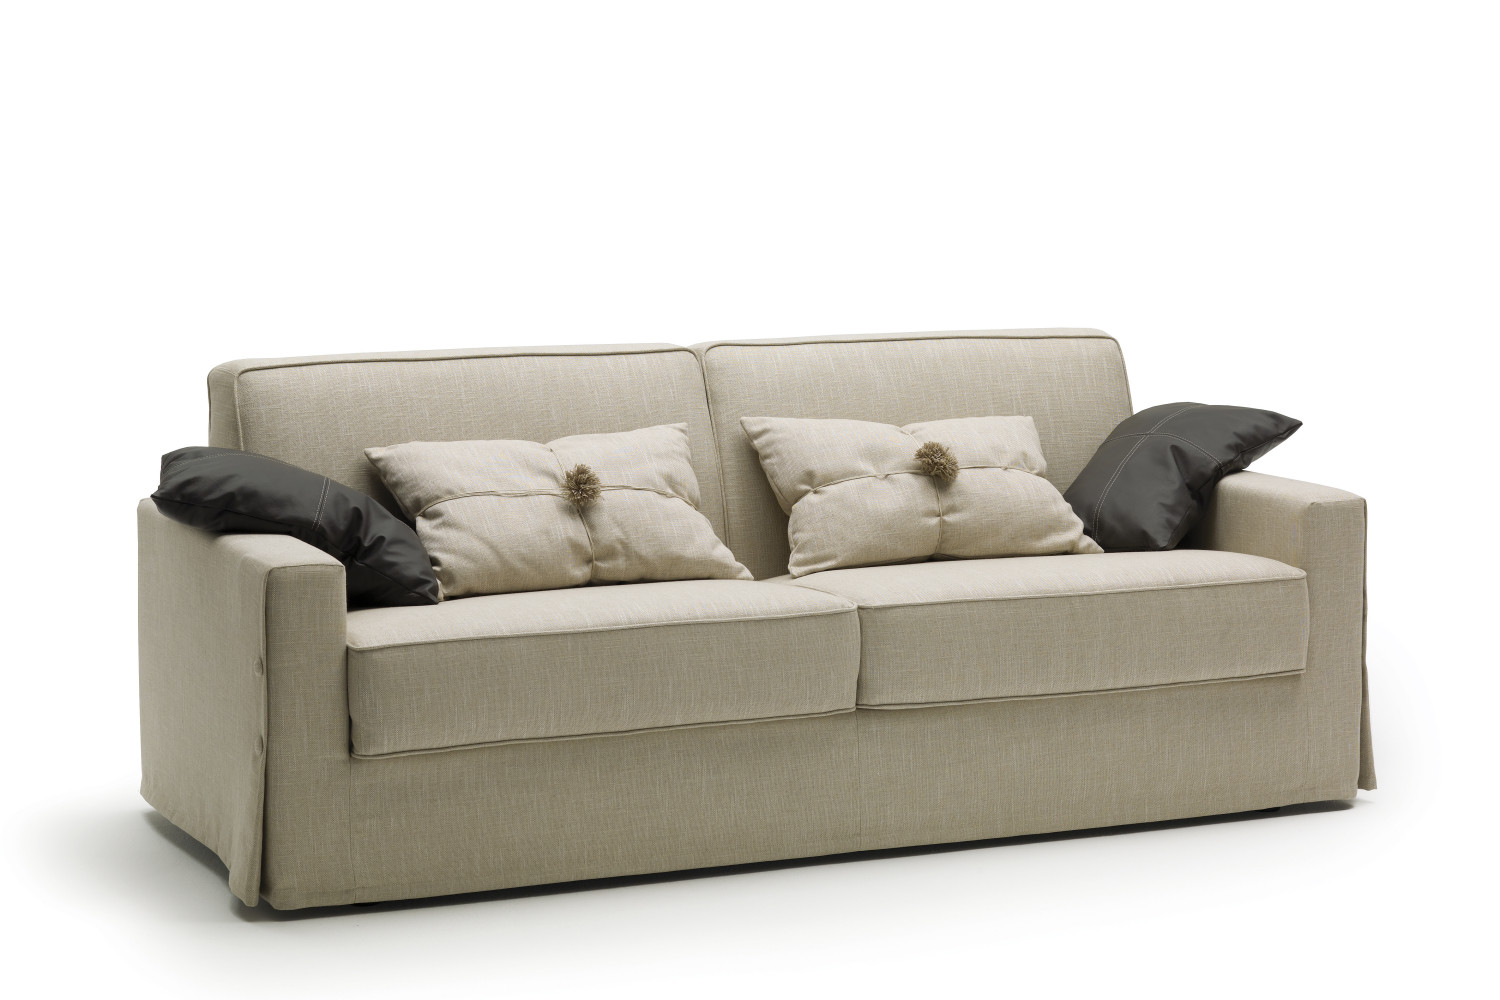 Canap convertible couchage quotidien taylor for Convertible couchage quotidien